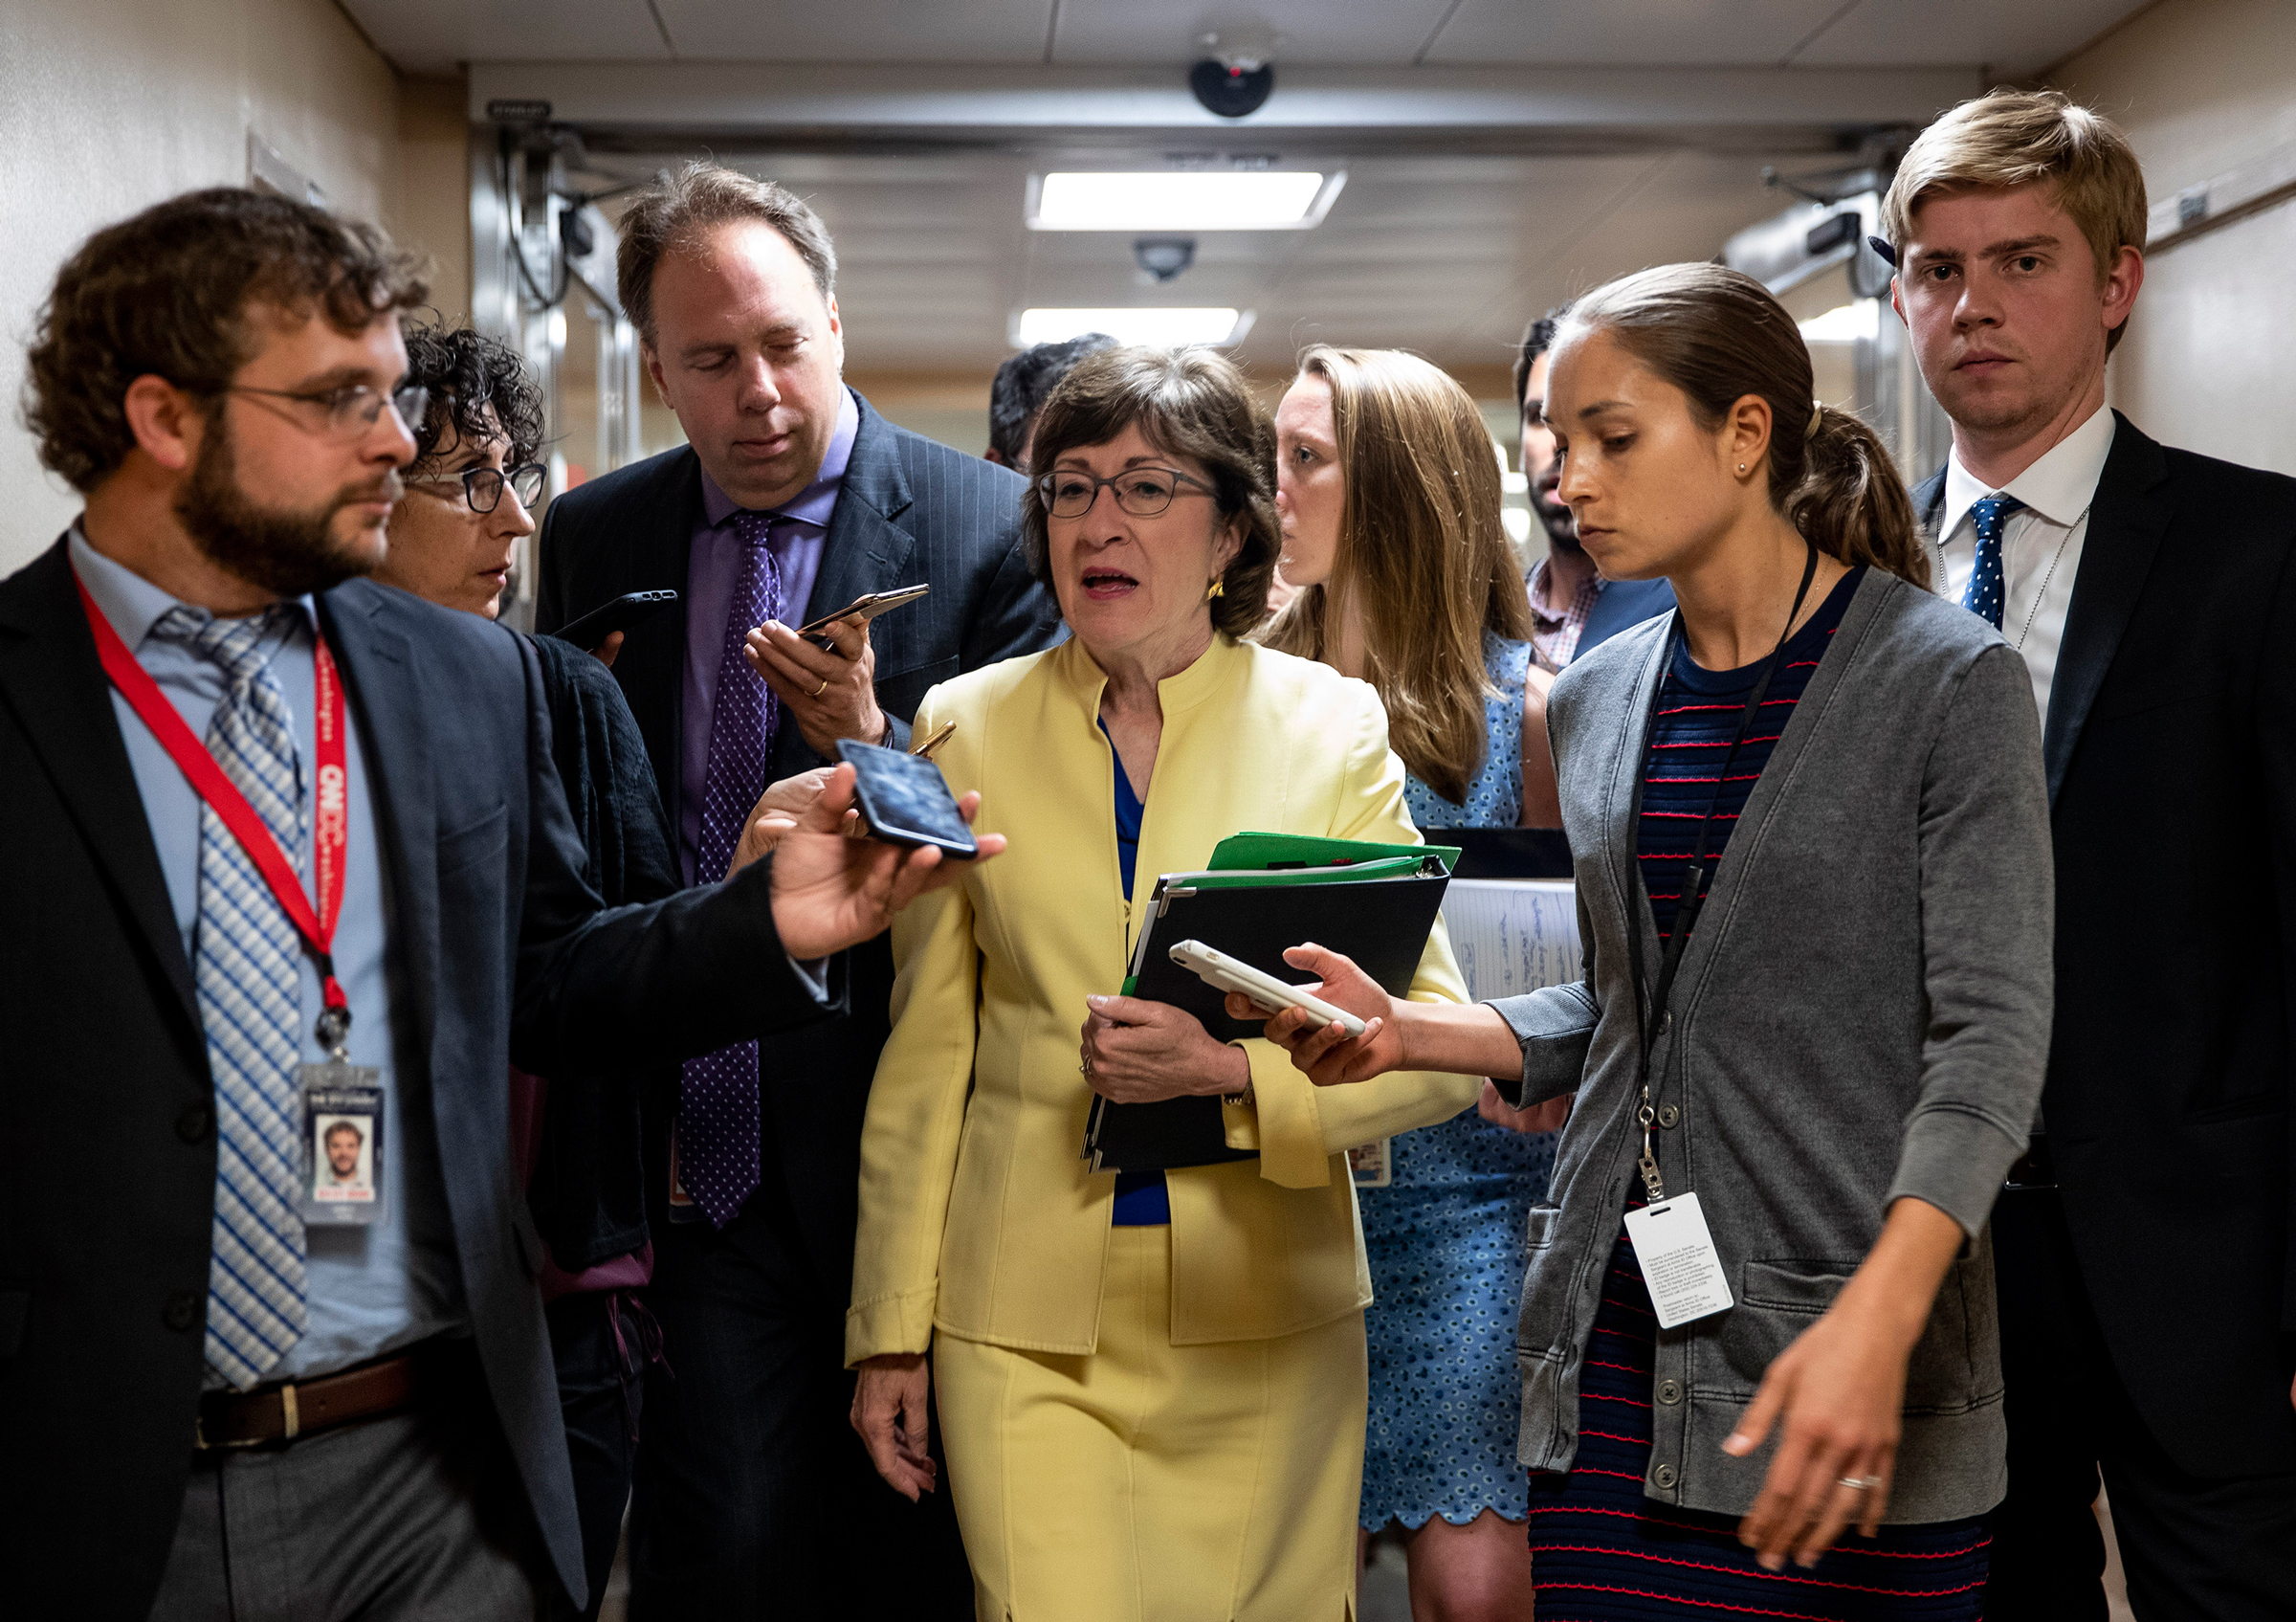 FILE -- Sen. Susan Collins (R-Maine) speaks to reporters while heading to the Senate floor at the Capitol in Washington, July 31, 2019. Congress is bracing this month for another round of bitter spending battles over President Donald Trump's promised border wall and his immigration agenda, with only three weeks remaining before the government runs out of money. (Anna Moneymaker/The New York Times)